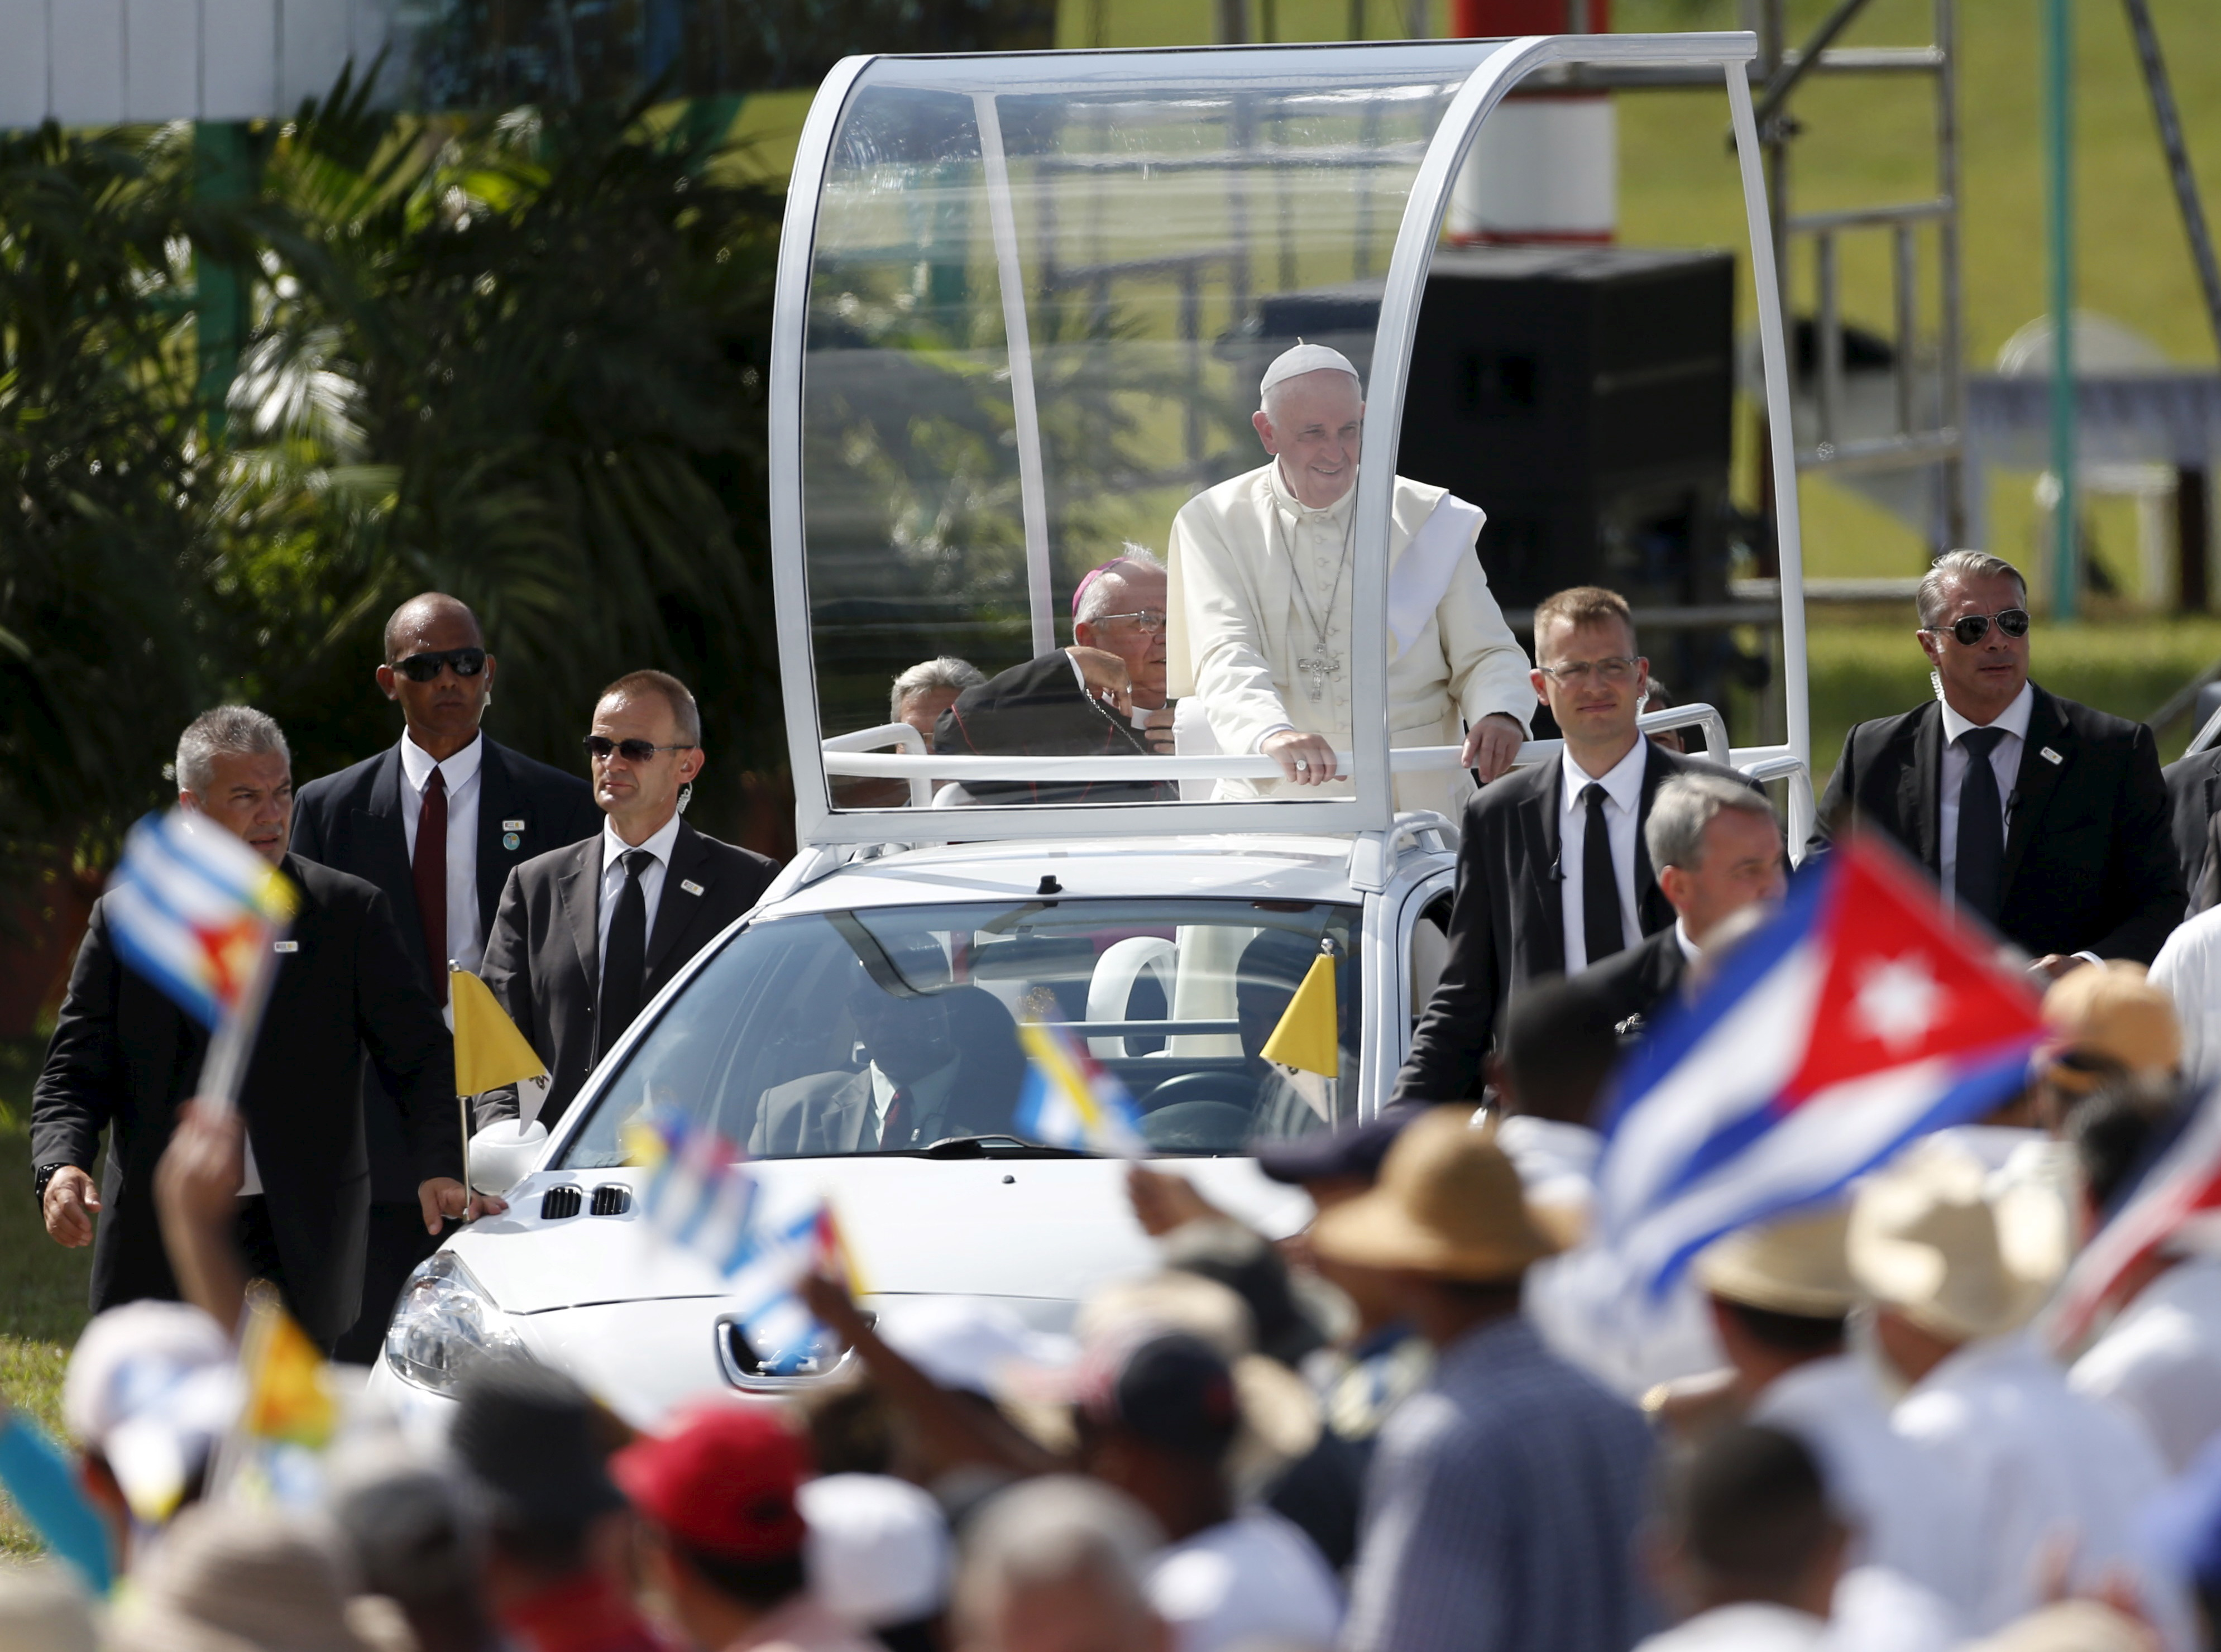 Pope Francis arrives to hold a Mass in Holguin, Cuba, Sept. 21, 2015.